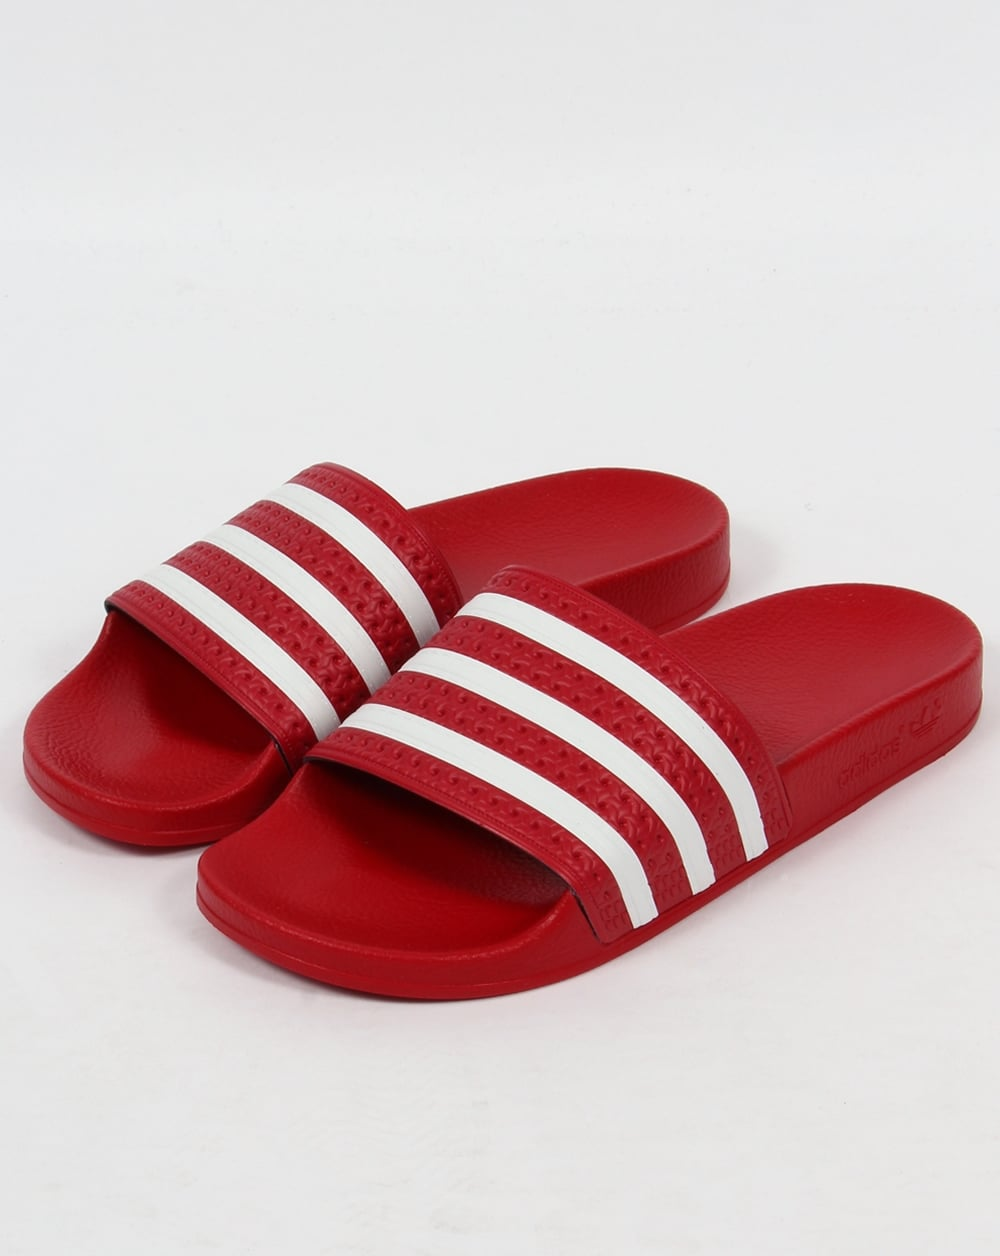 821bbf343108 Adidas Adilette Sliders Red White